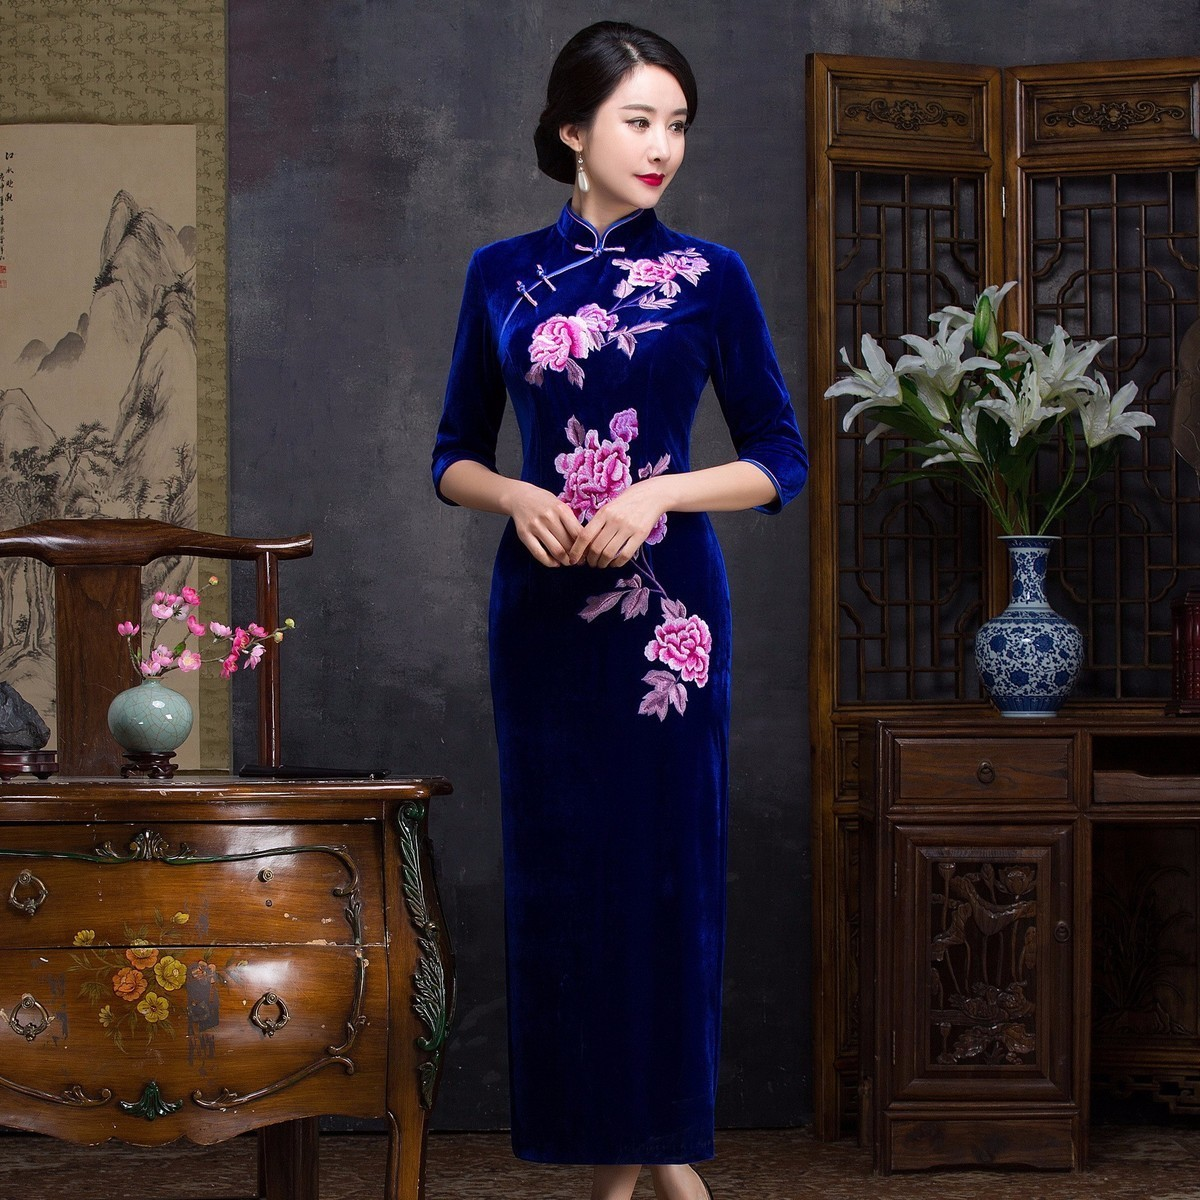 Black Wedding Gowns For Sale: Embroidered Traditional Formal Chinese Dress Vintage